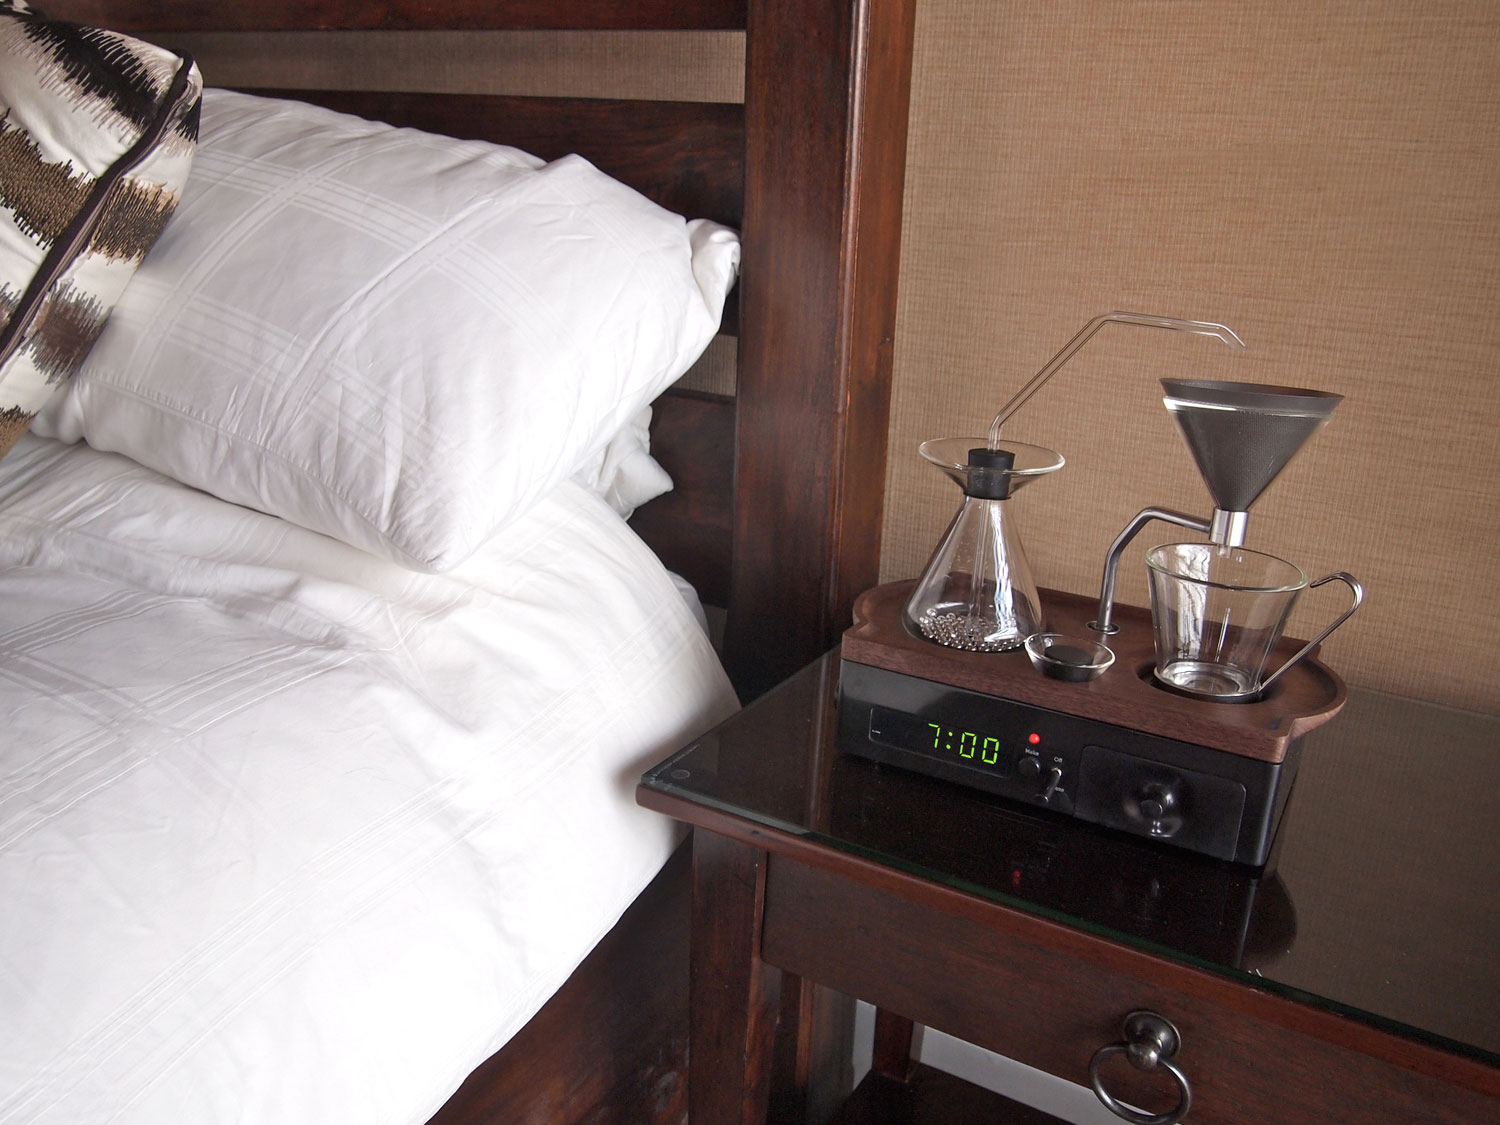 barisieur-coffee-maker-alarm-clock